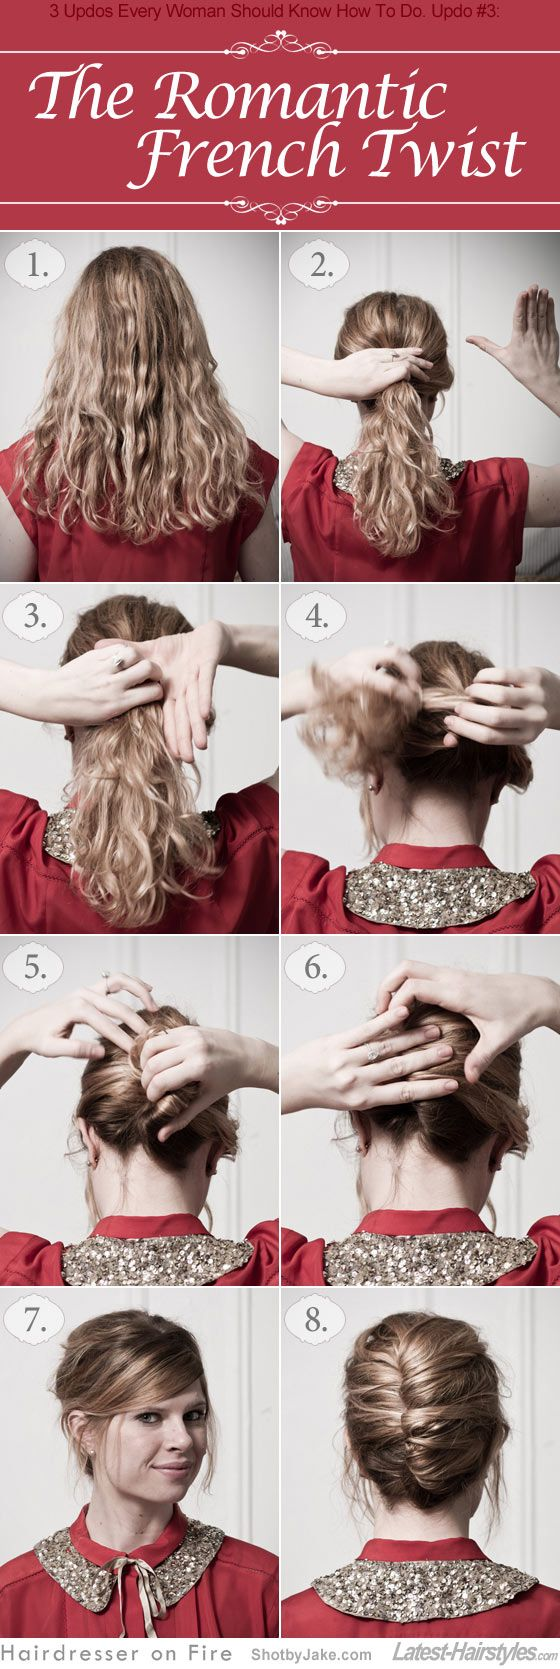 Diy new years eve hairstyle mb desire collection beauty hair